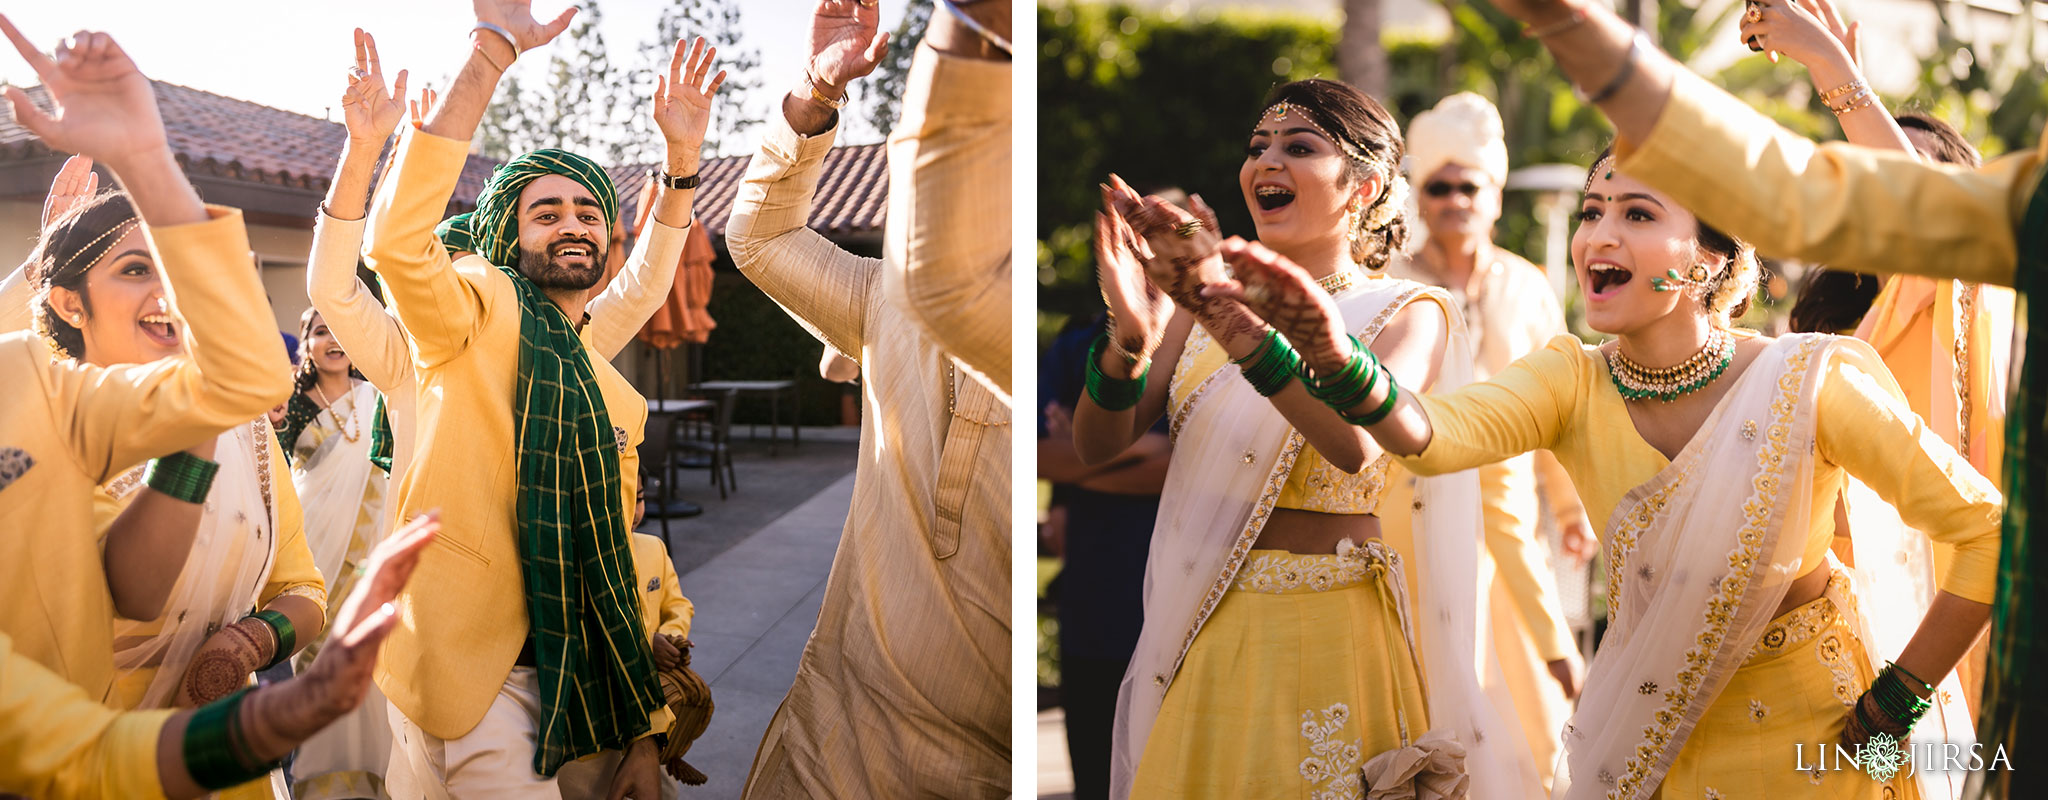 26 hotel irvine indian wedding baraat photography